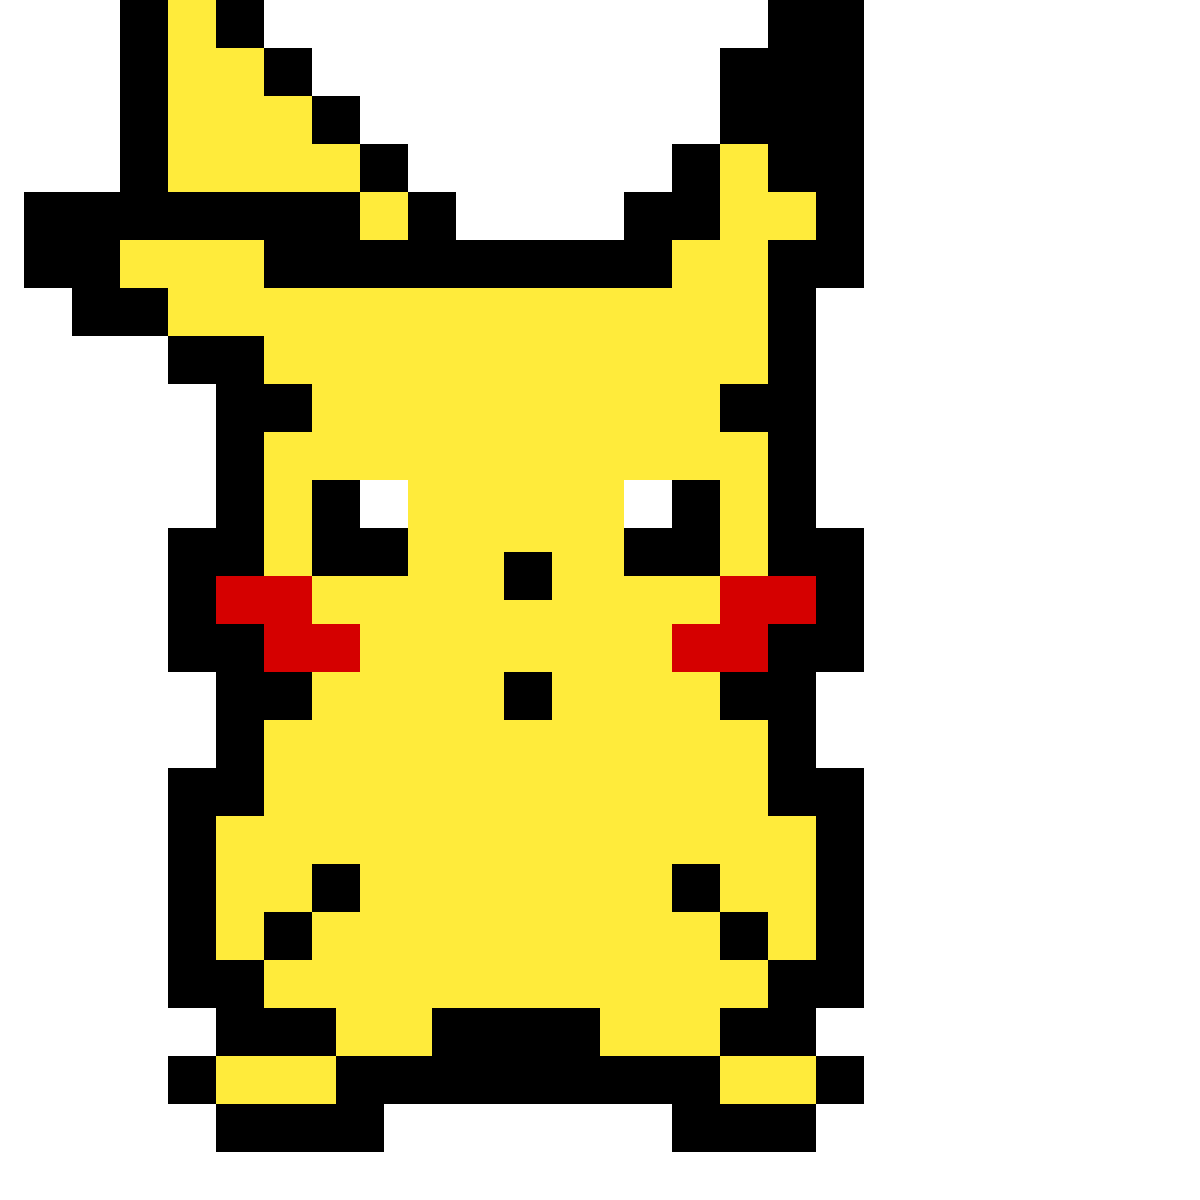 Pikachu by Dragoon-soldier